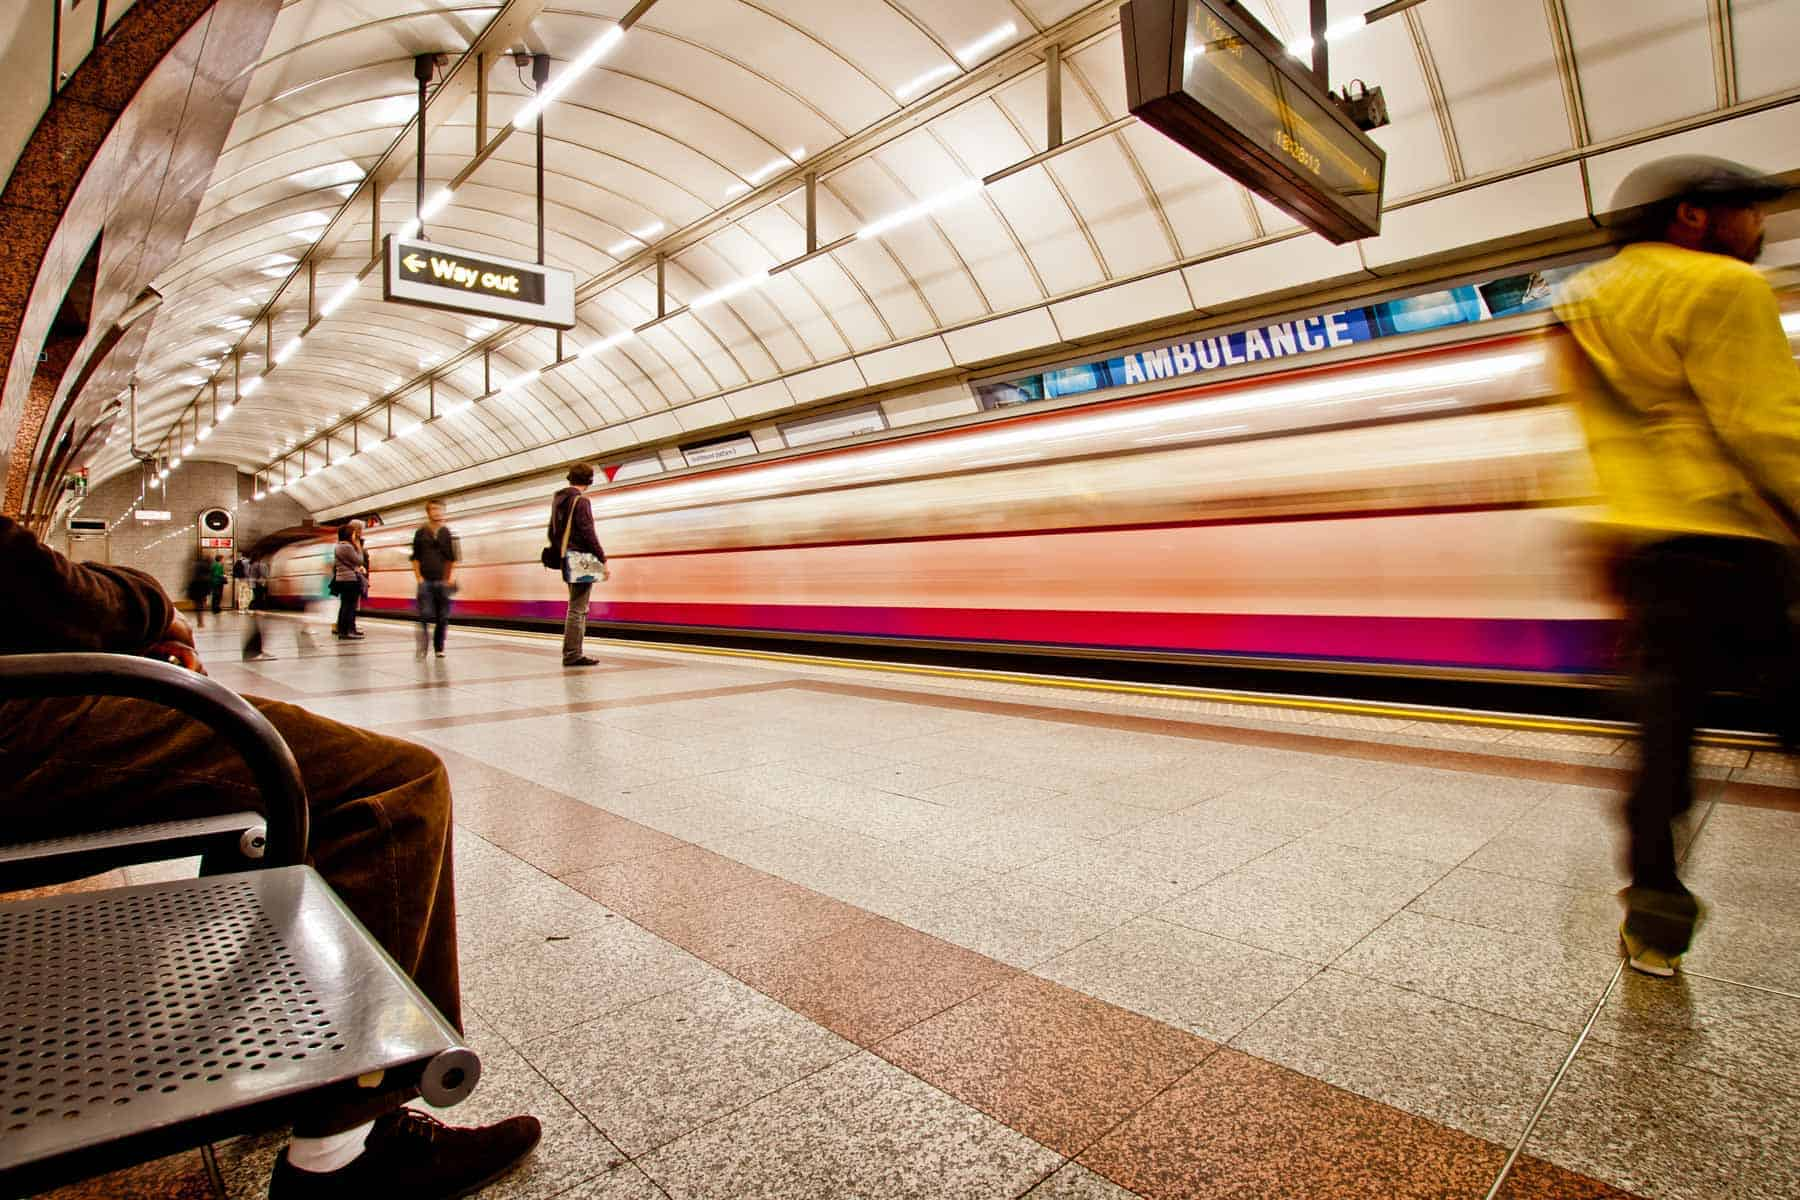 Free downloads from Piccia Neri. Fast life in the city: blurred movement of a London Underground train arriving in a tube station.